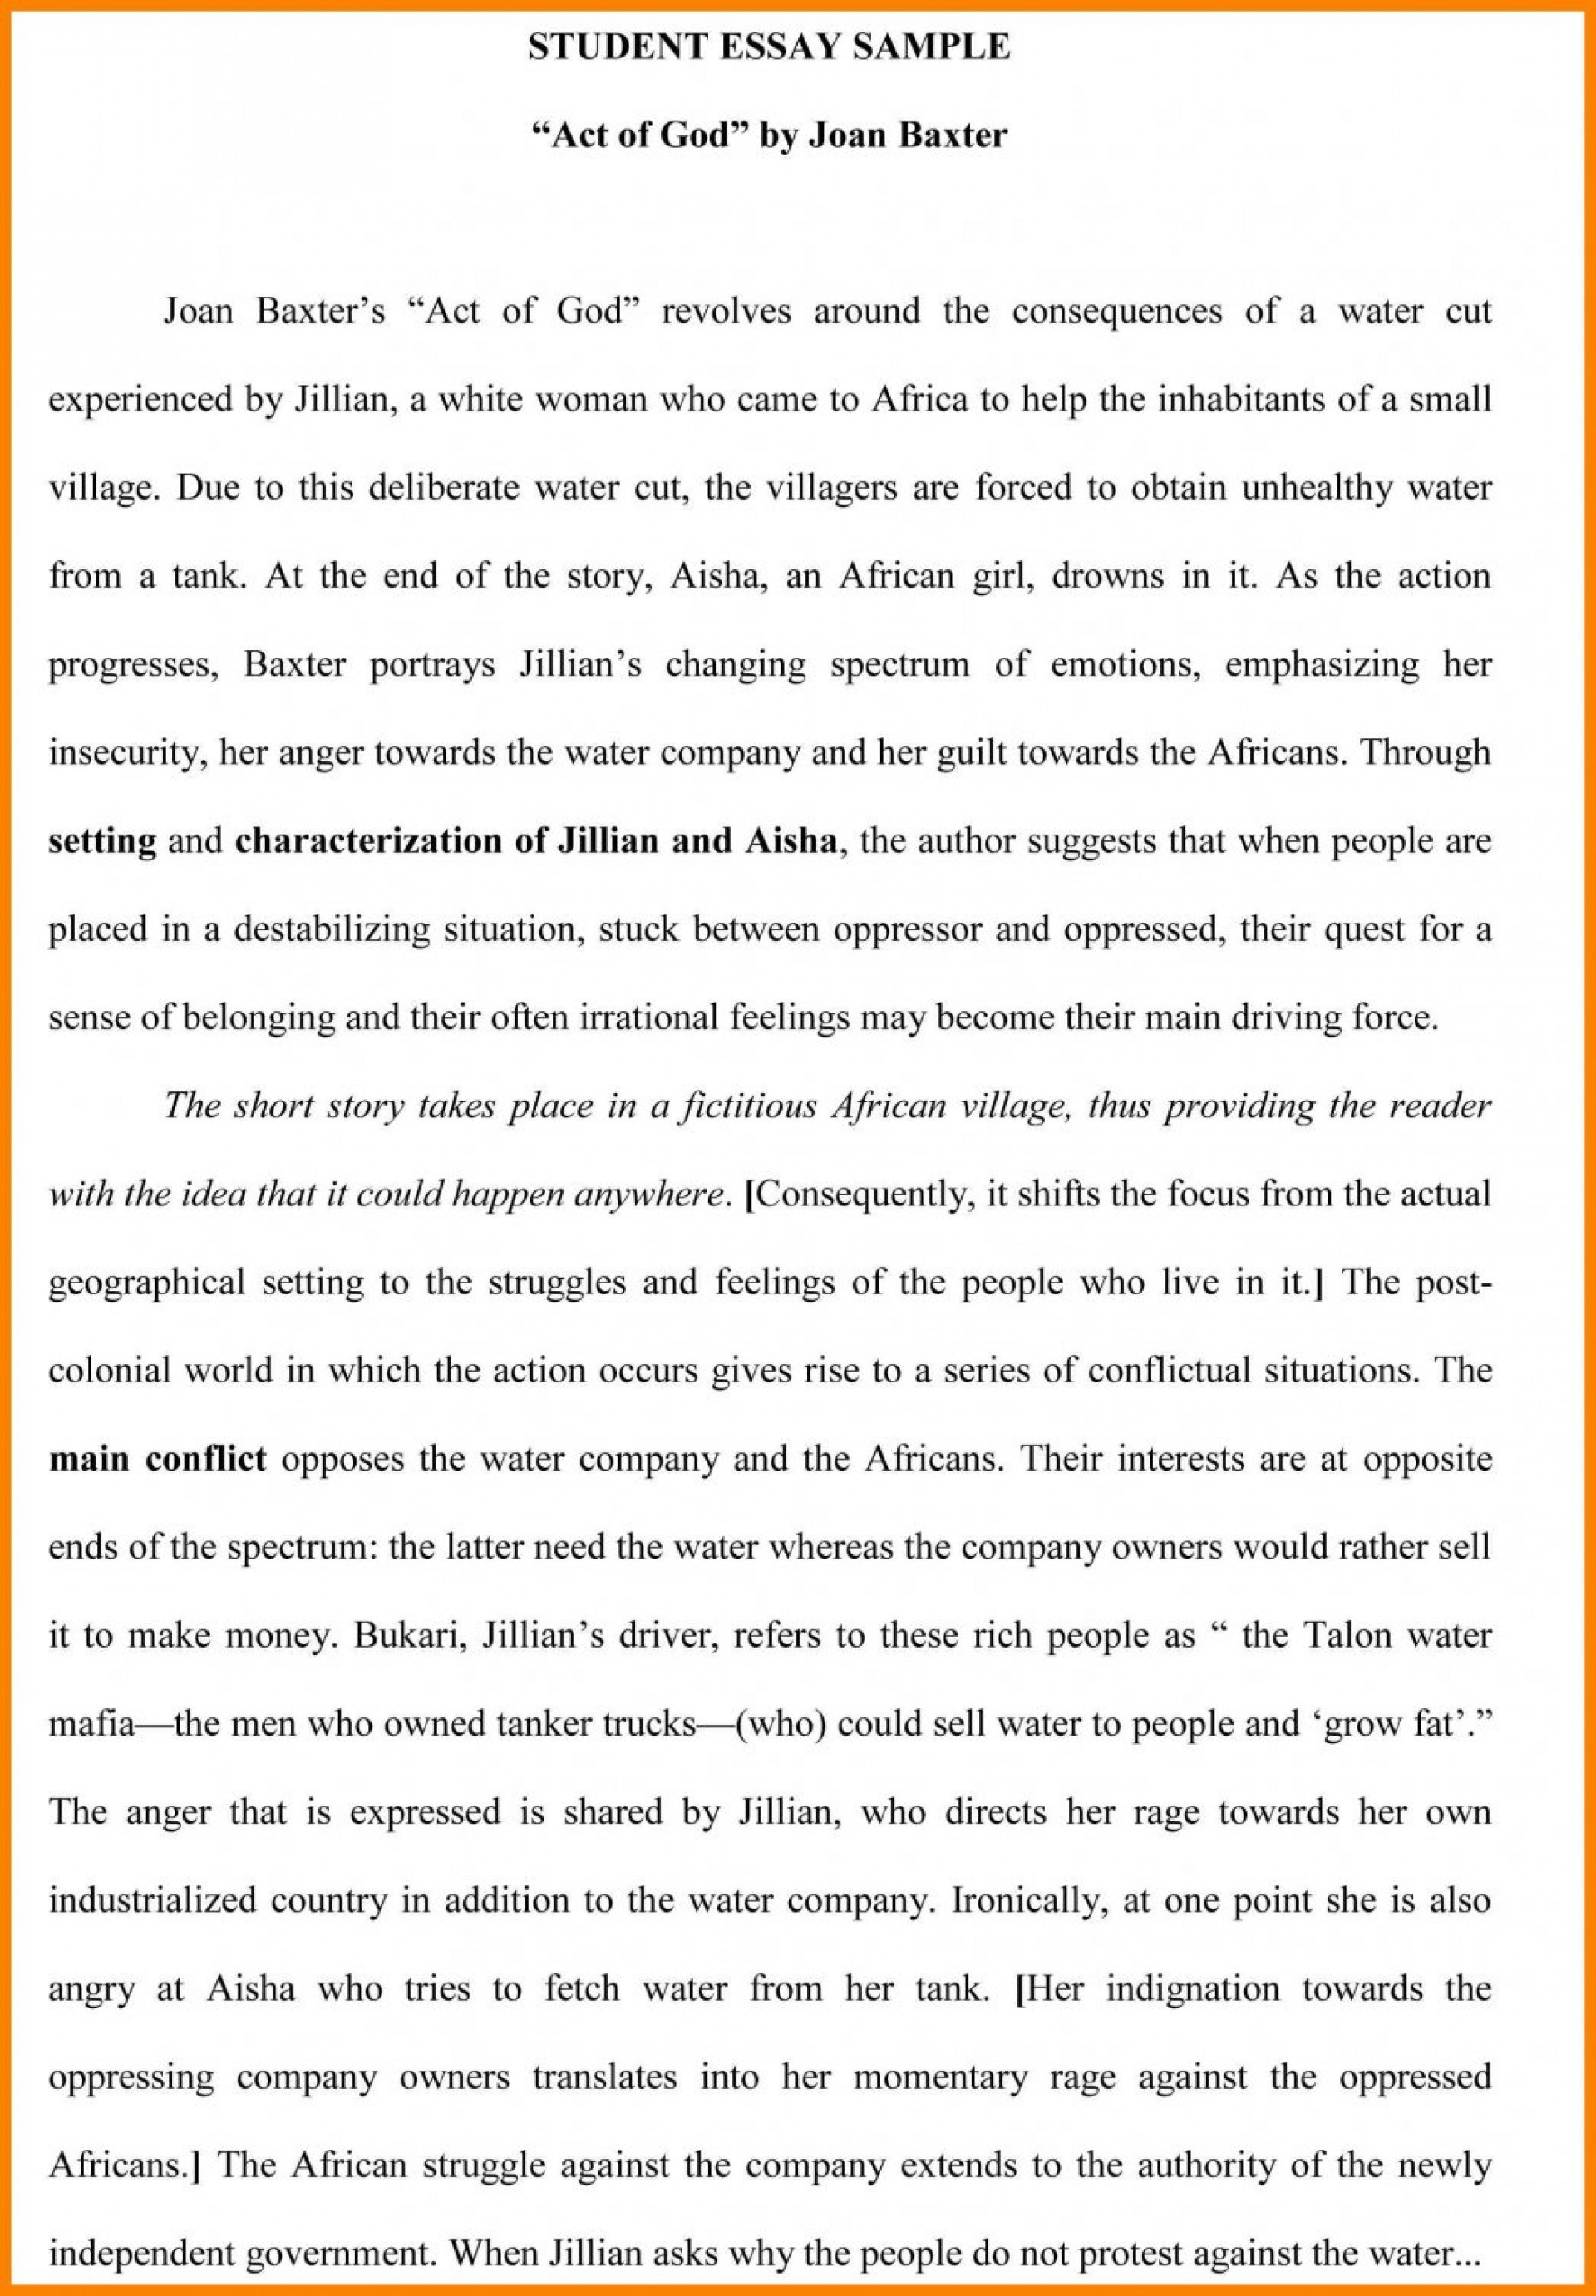 003 Examples Of Process Essays Pdf Essay Example College St Paper Sample Samples Ielts Topics How To Bake Cake Processchronological 1048x1508 Exceptional Do A Start Off You Write Analysis 1920